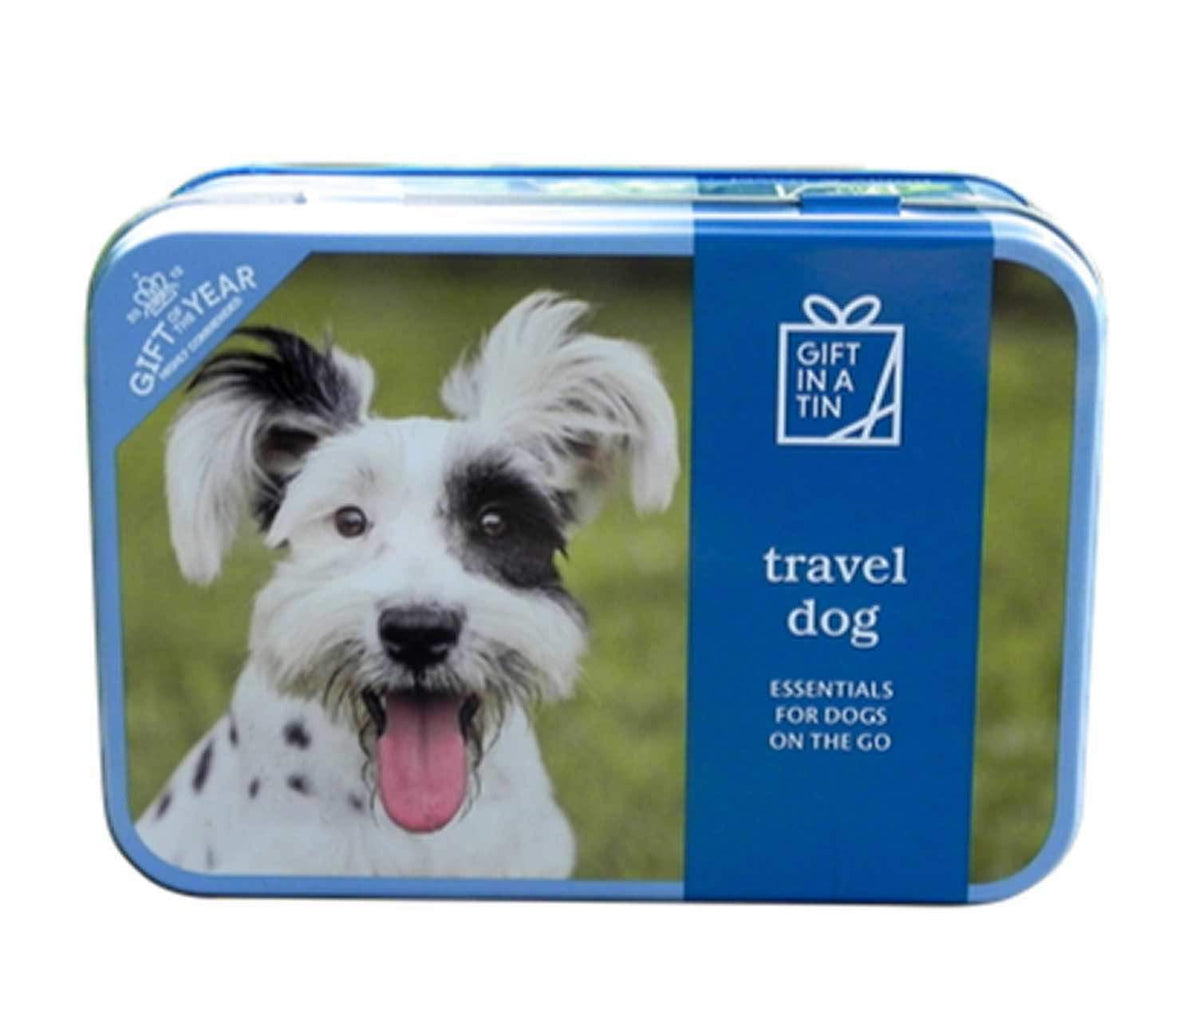 Traveling Dog in a Tin